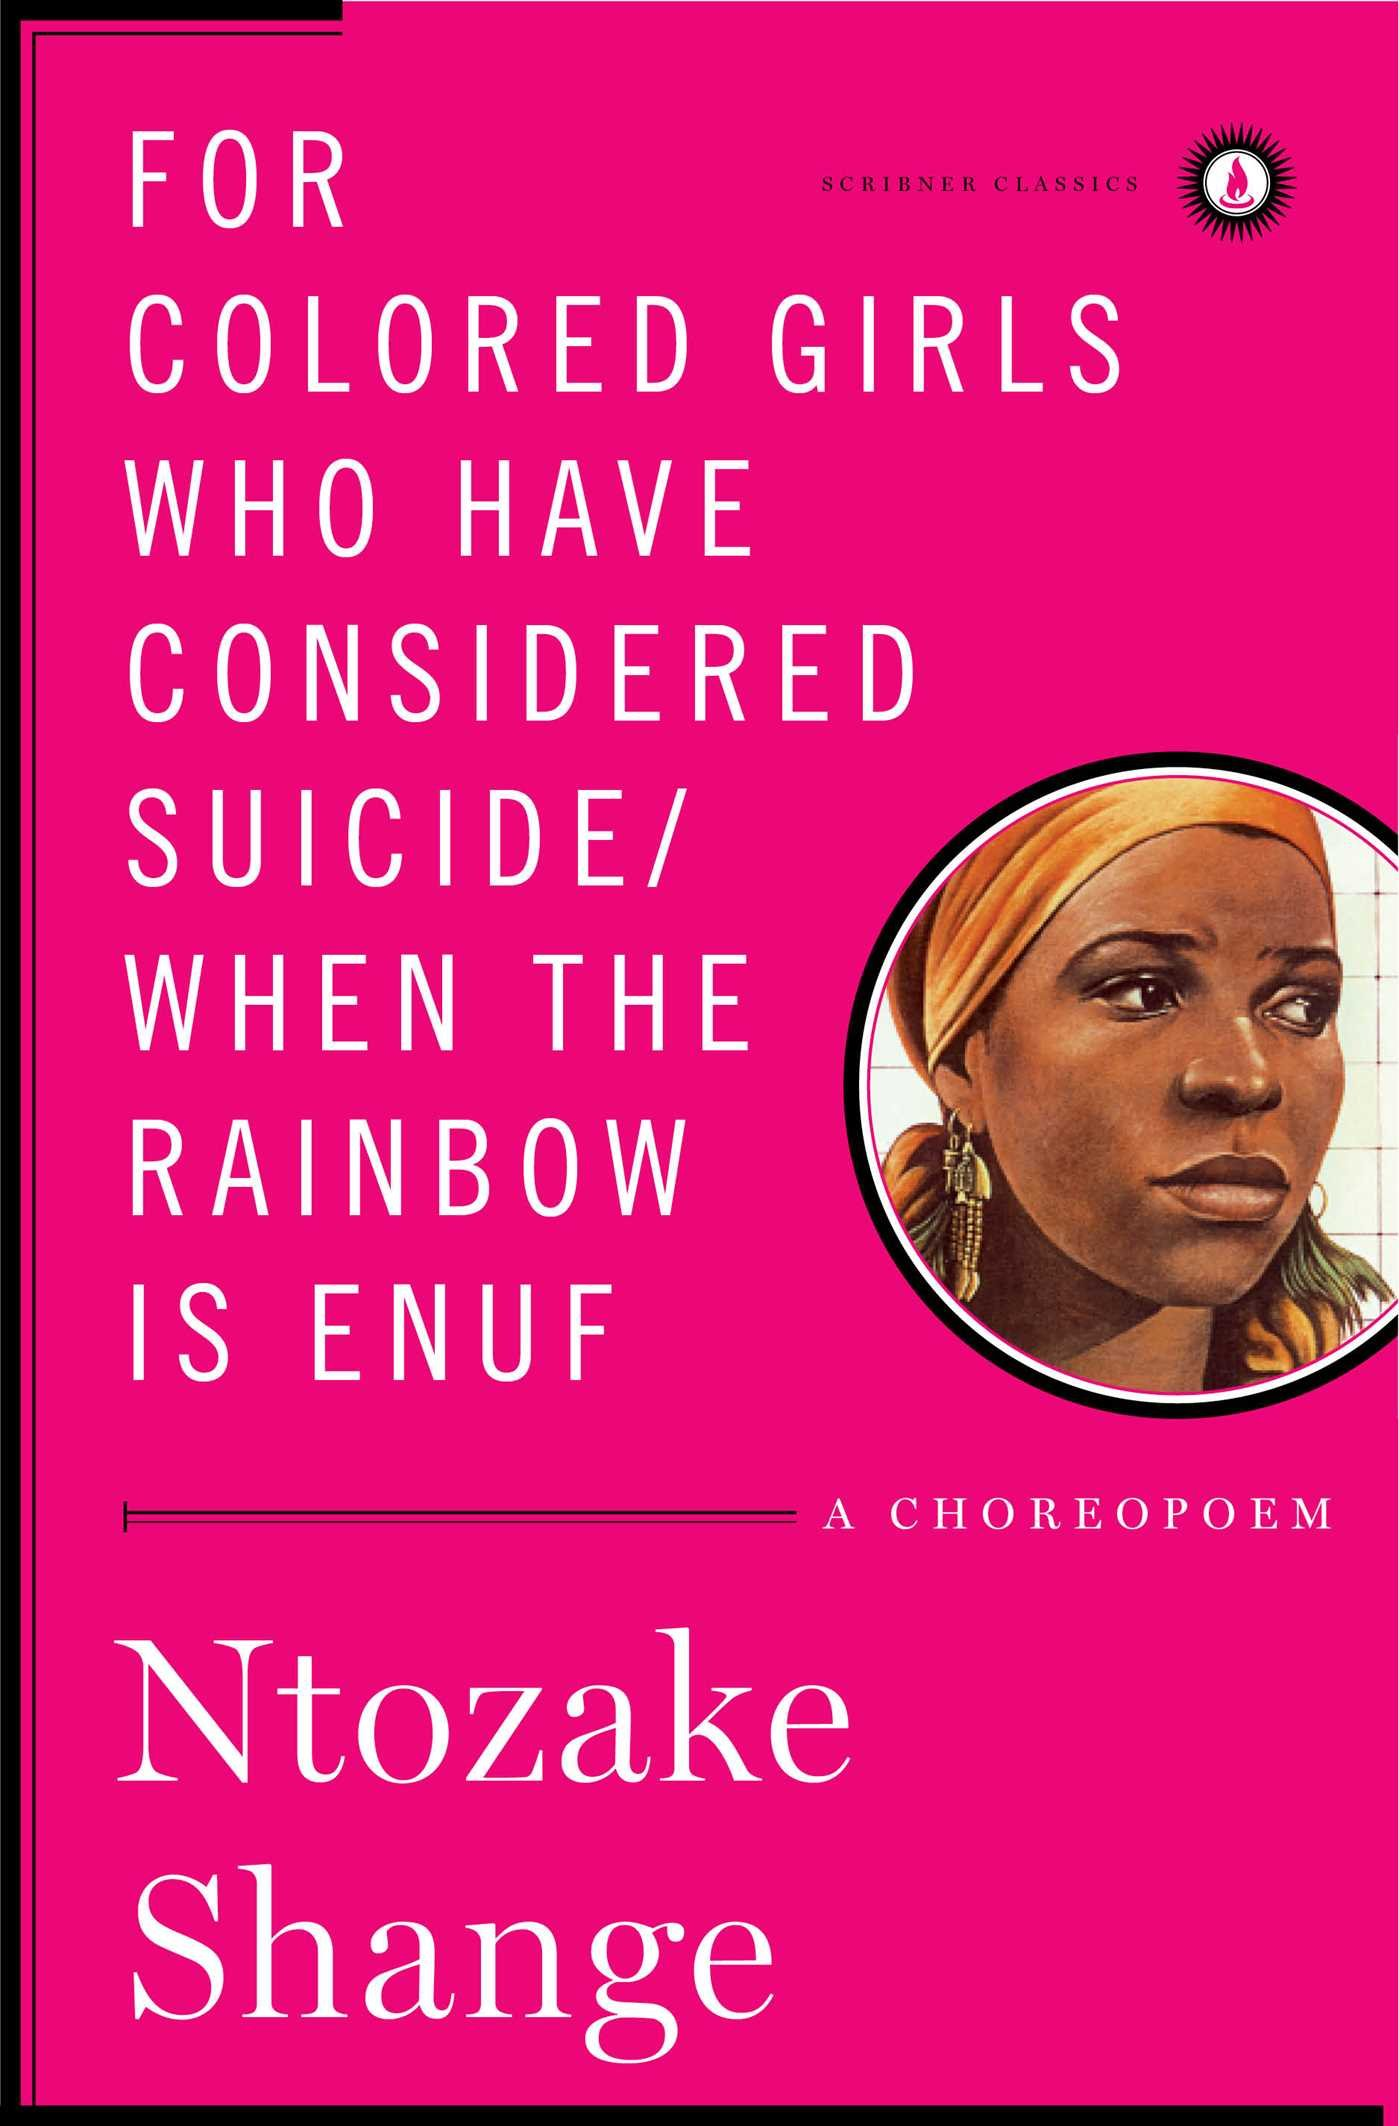 Amazon.com: For colored girls who have considered suicide/When the ...